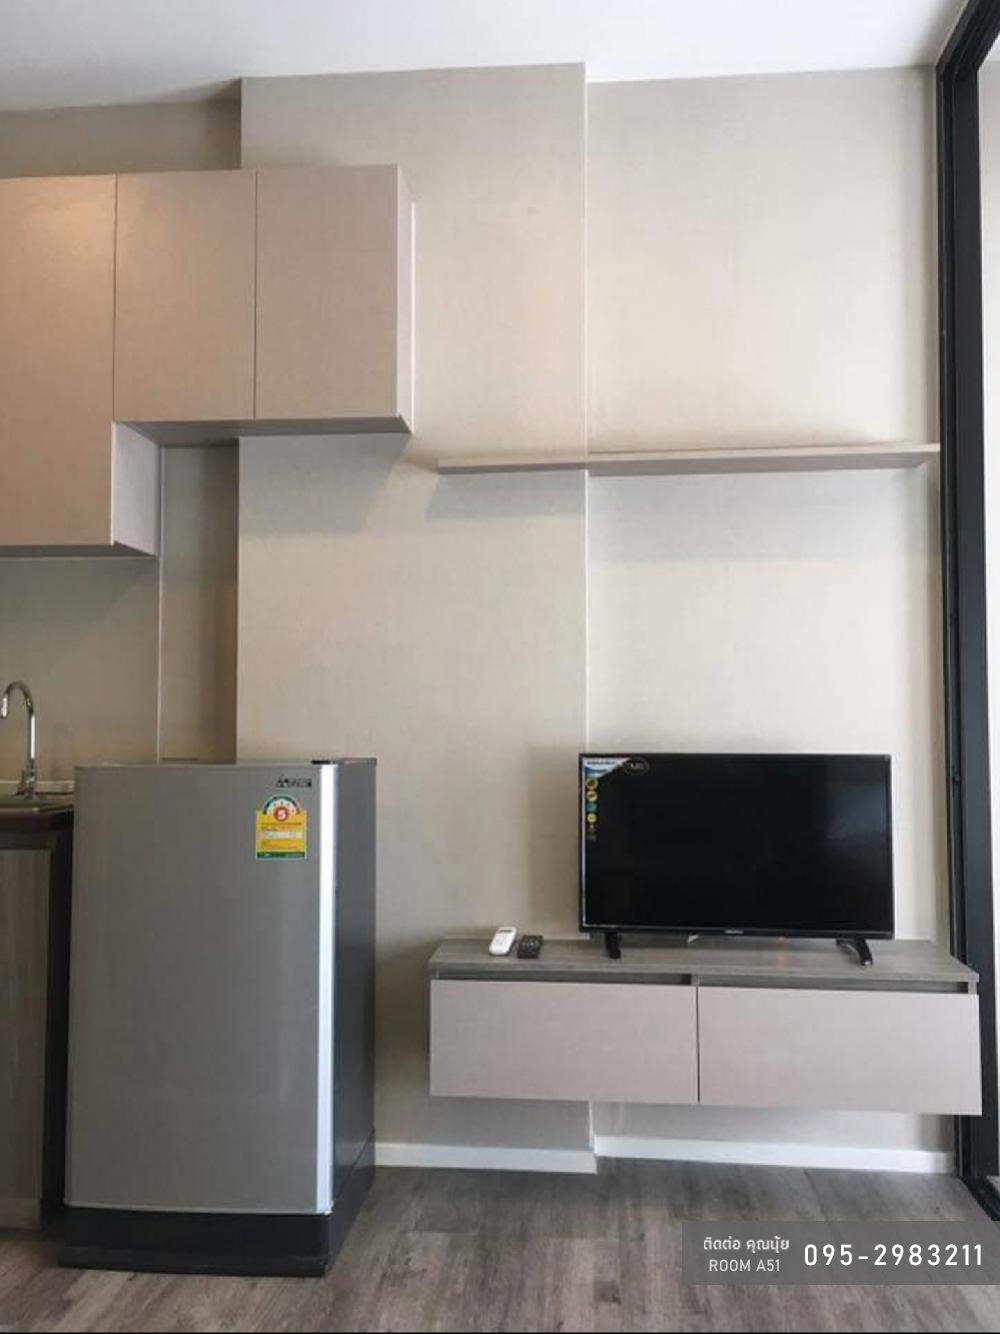 For RentCondoRatchadapisek, Huaikwang, Suttisan : [A51] Condo for rent Brown Ratchada 32 (Brown Condo Ratchada 32) Room size 24 sq.m., 6th floor, pool view, near MRT Lat Phrao